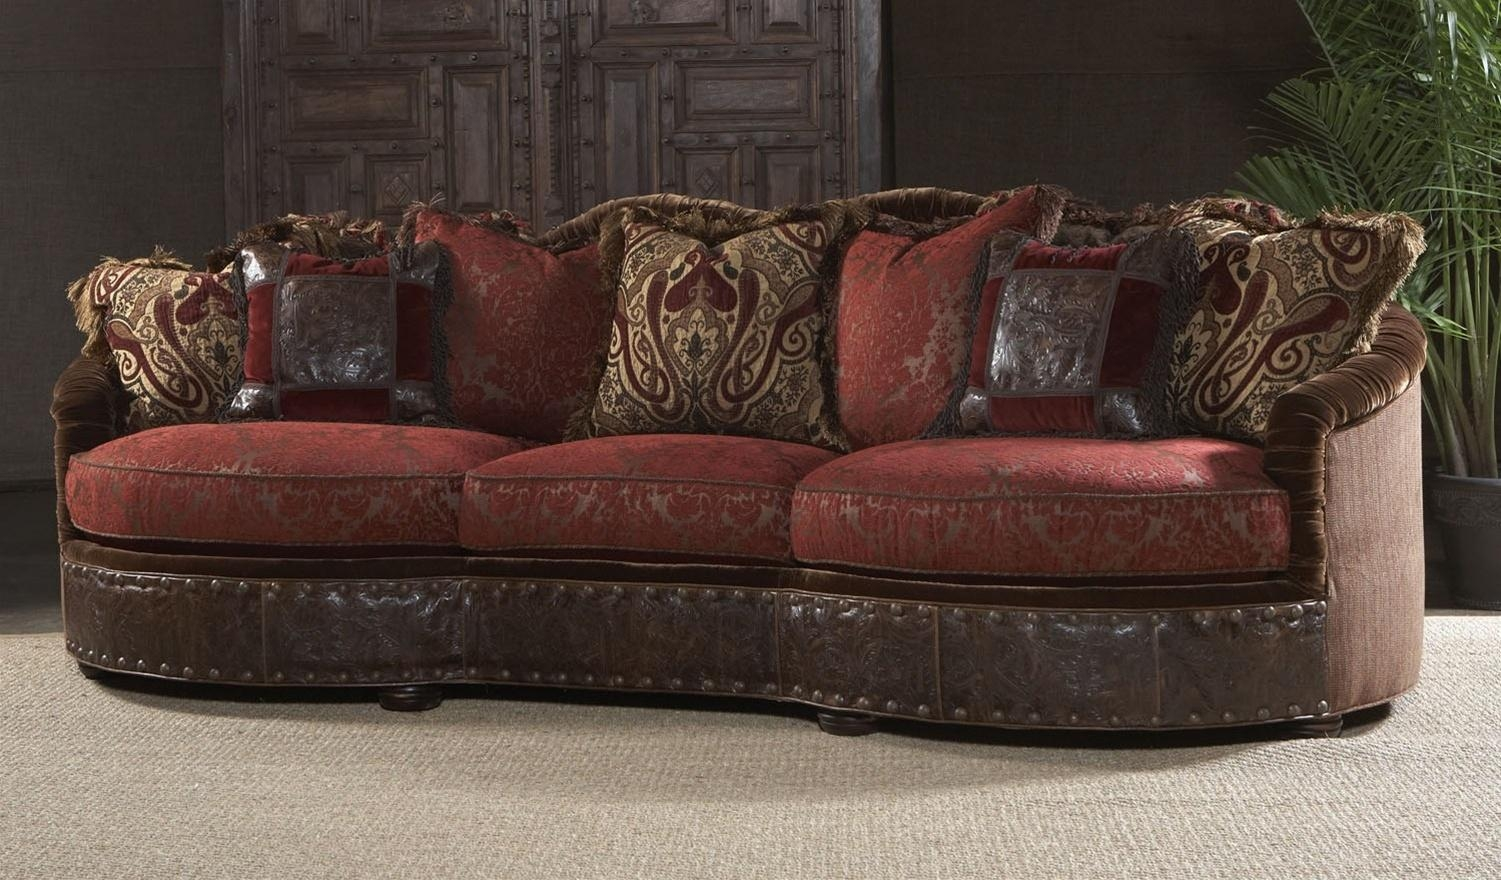 Furniture: Burgundy Sofa | Sectional Sofa Amazon | Leather Sofa Pertaining To Burgundy Leather Sofa Sets (View 16 of 20)